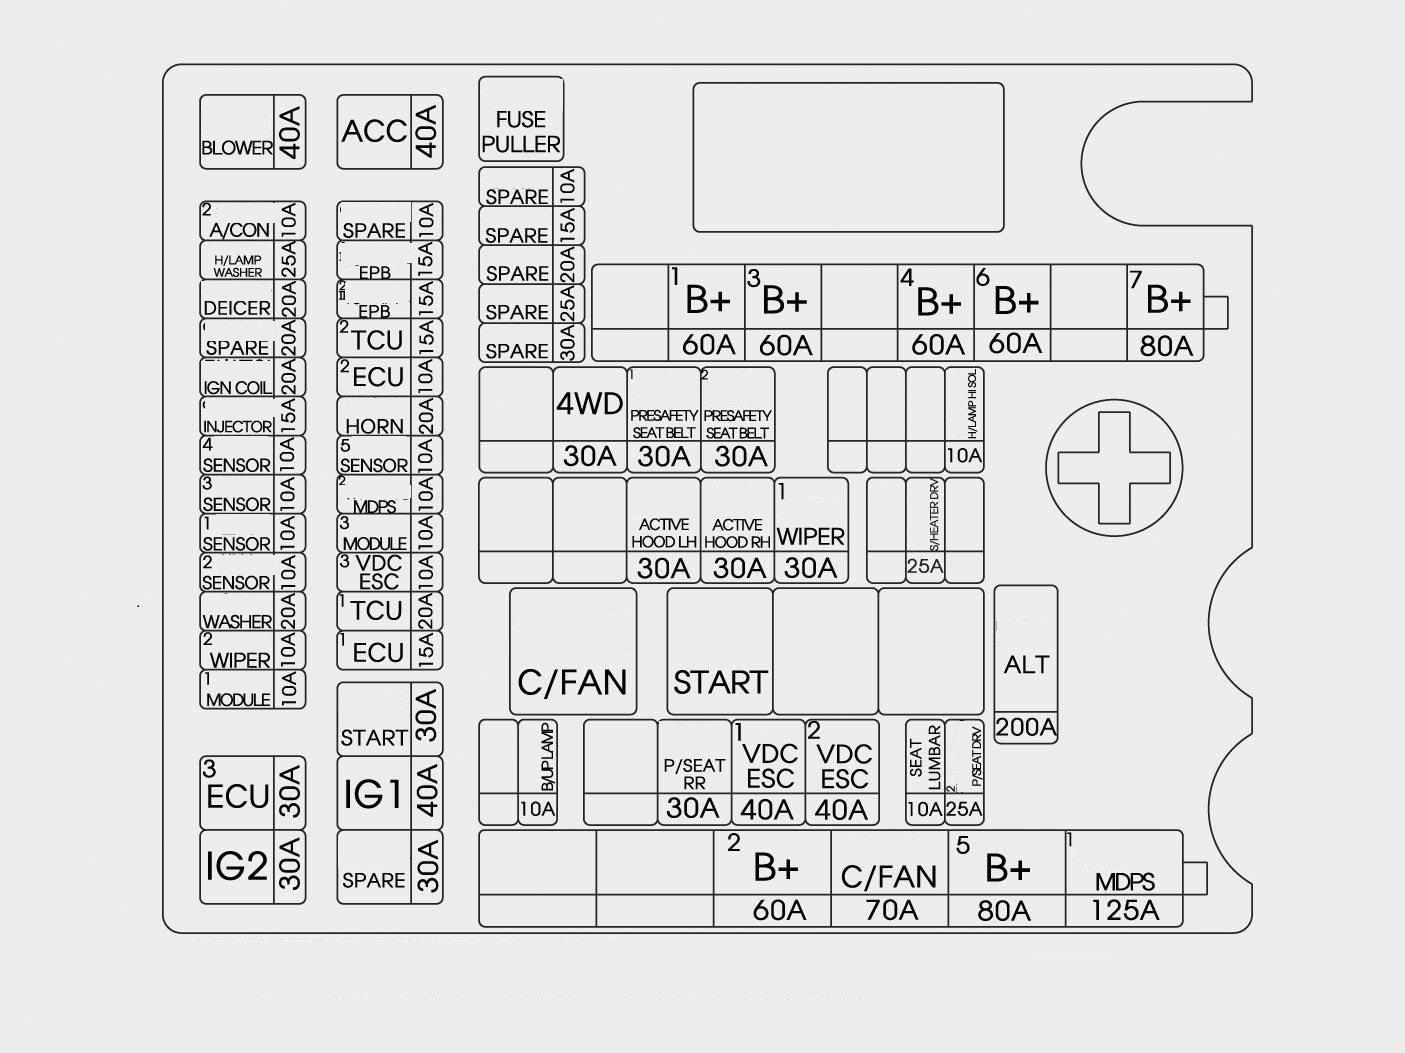 hyundai genesis fuse box diagram 32 wiring diagram images wiring diagrams edmiracle co 2006 hyundai santa fe fuse box diagram 2006 hyundai santa fe fuse box location